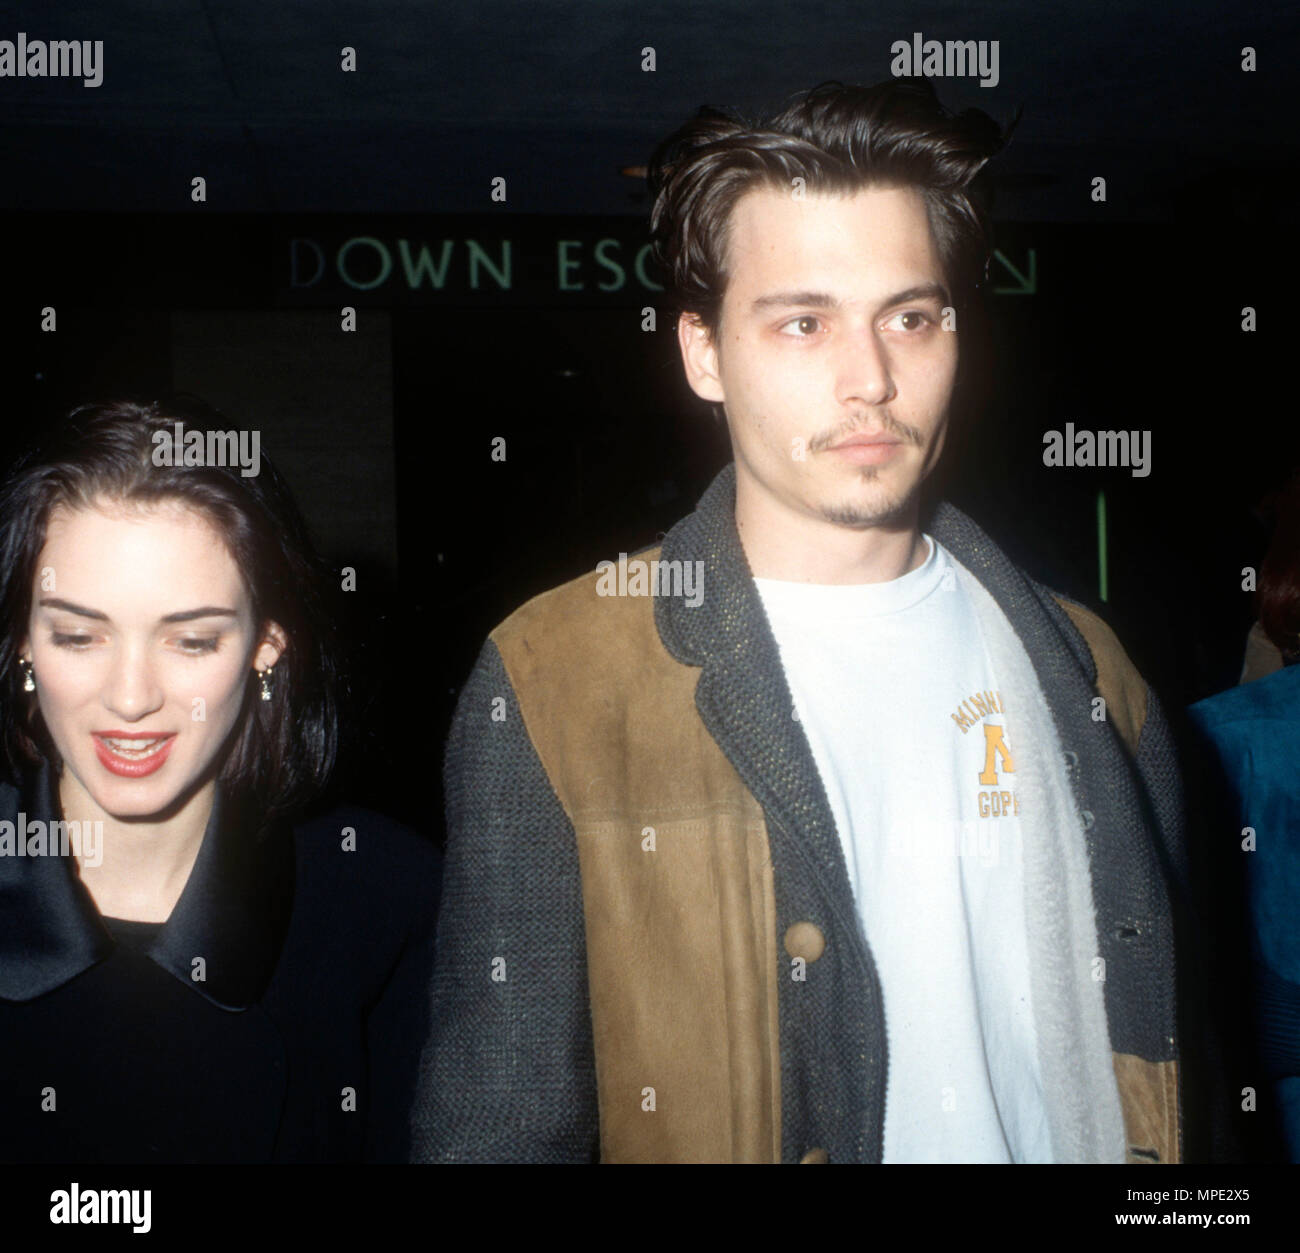 CENTURY CITY, CA - FEBRUARY 2: (L-R) Actress Winona Ryder and actor Johnny Depp attend 'The Silence of the Lambs' Century City Premiere on February 2, 1991 at Cineplex Odeon Century City Cinemas in Century City, California. Photo by Barry King/Alamy Stock Photo - Stock Image